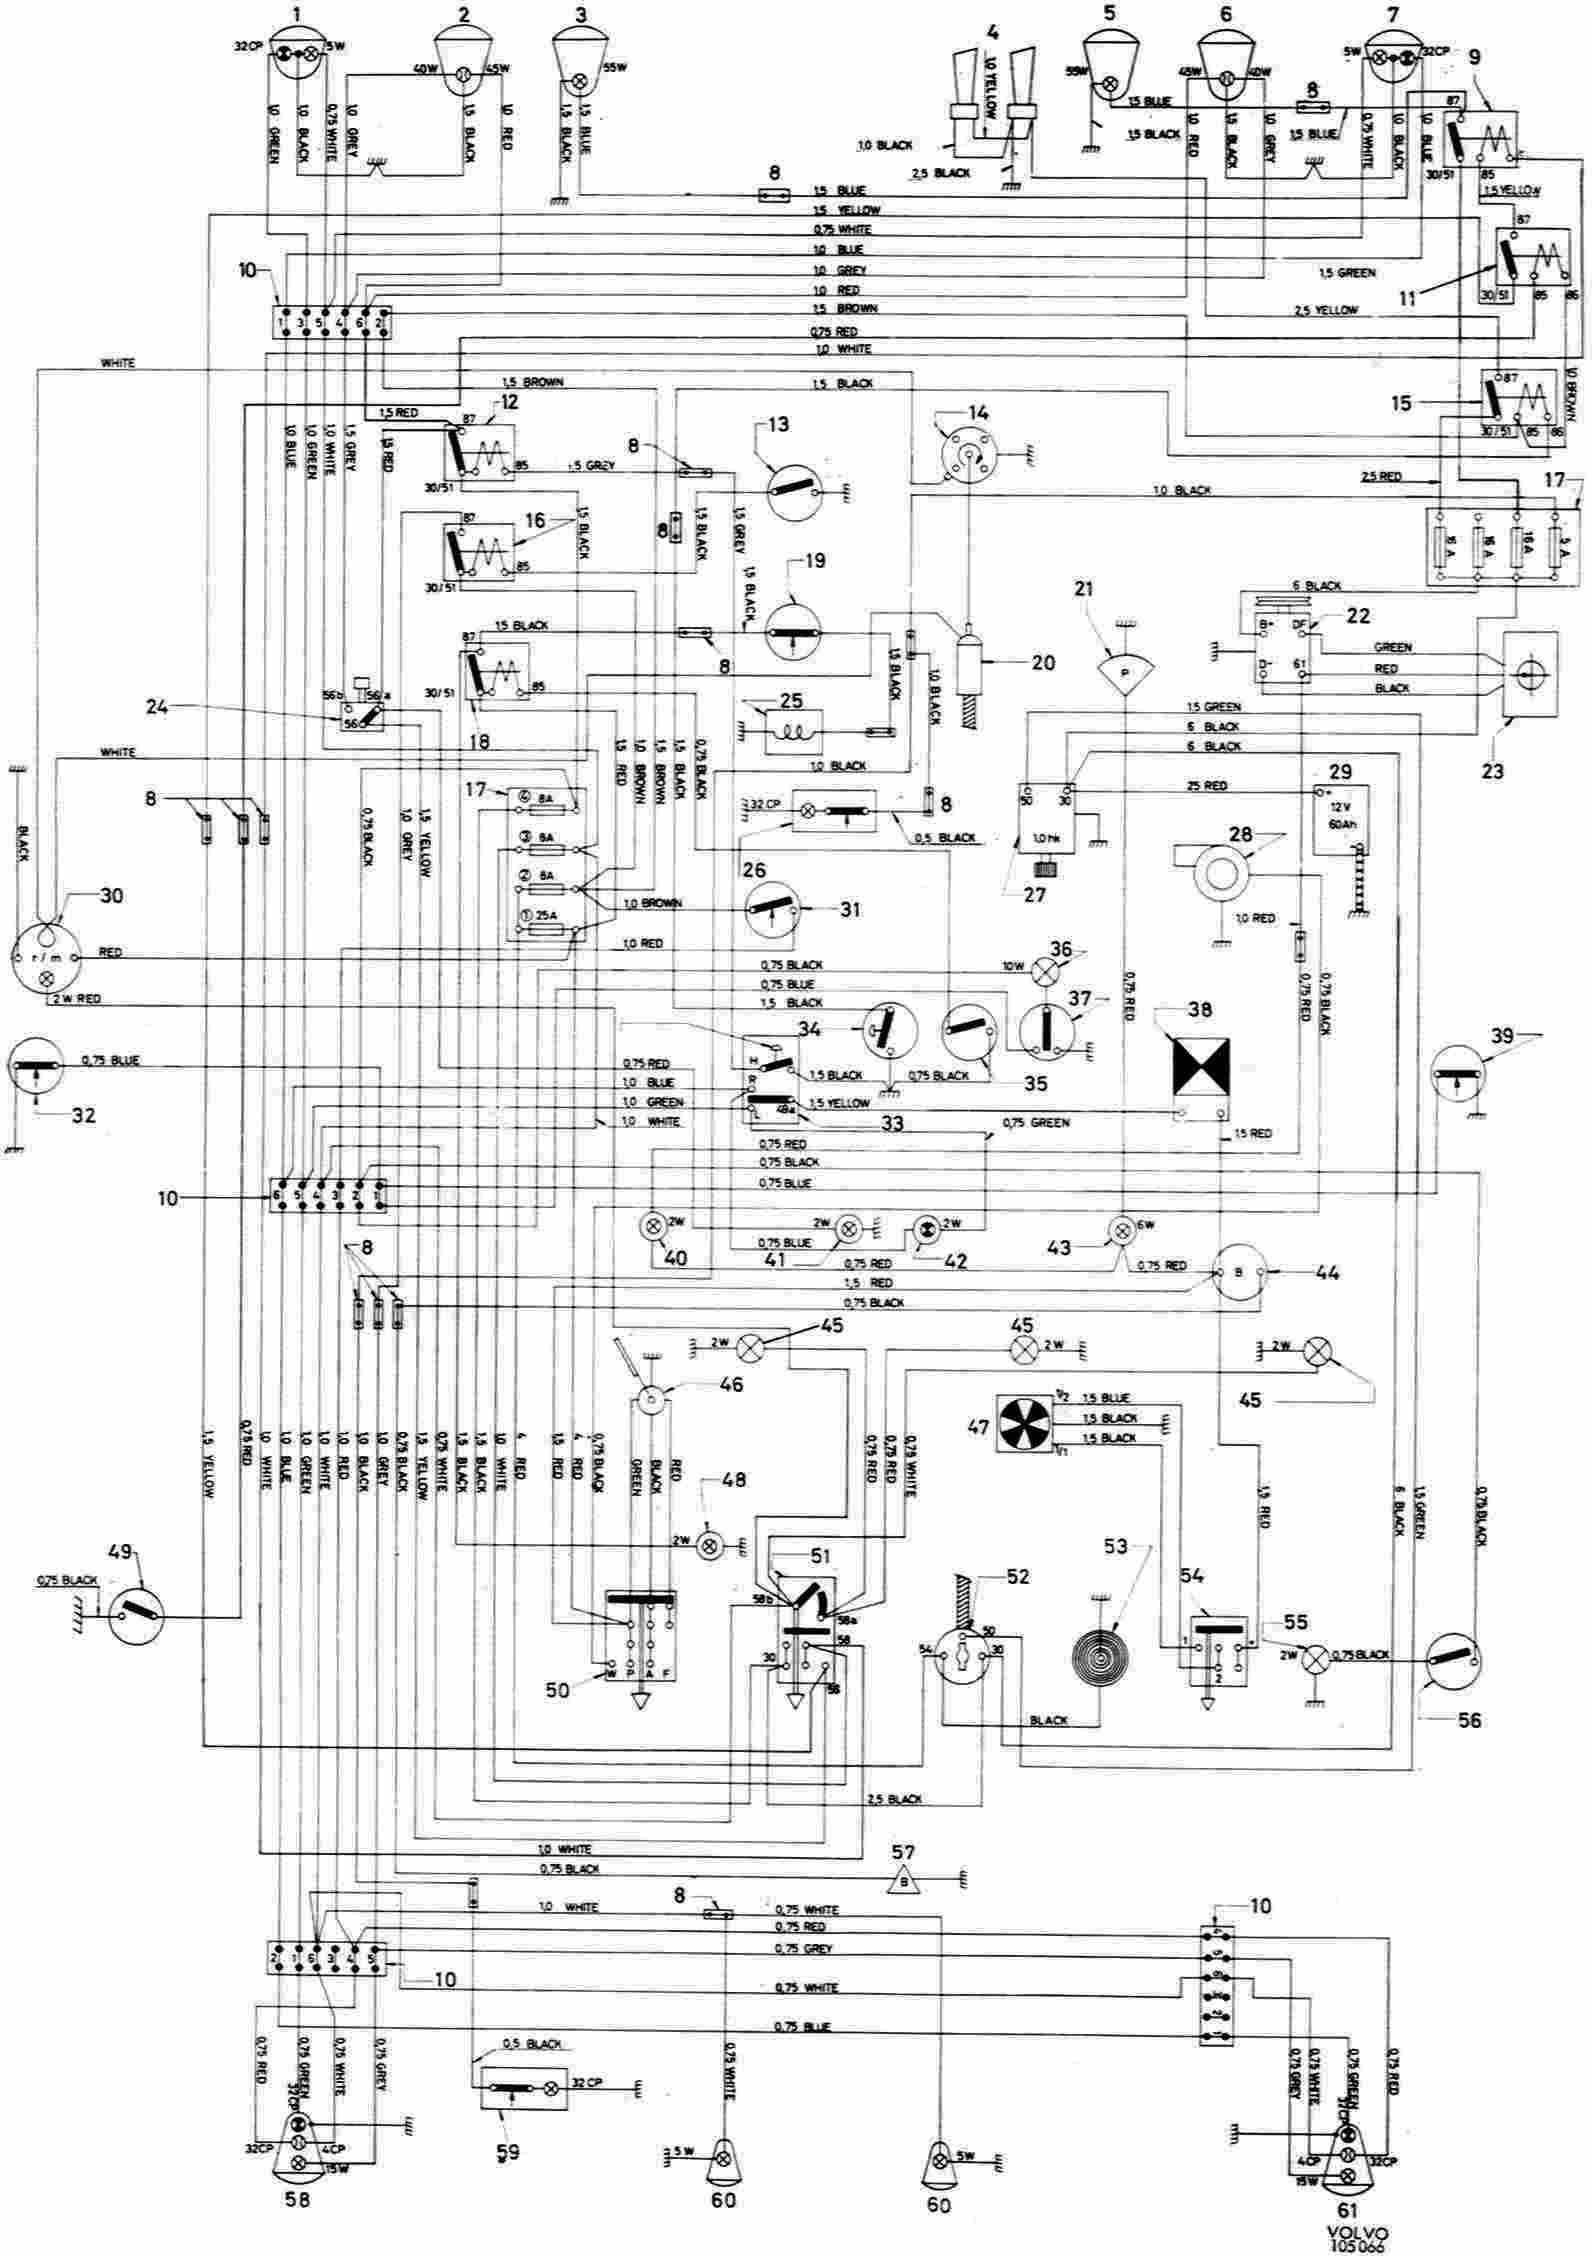 Diagram Volvo 740 Gl Engine Diagram Full Version Hd Quality Engine Diagram Diagramdianeu Mairiecellule Fr